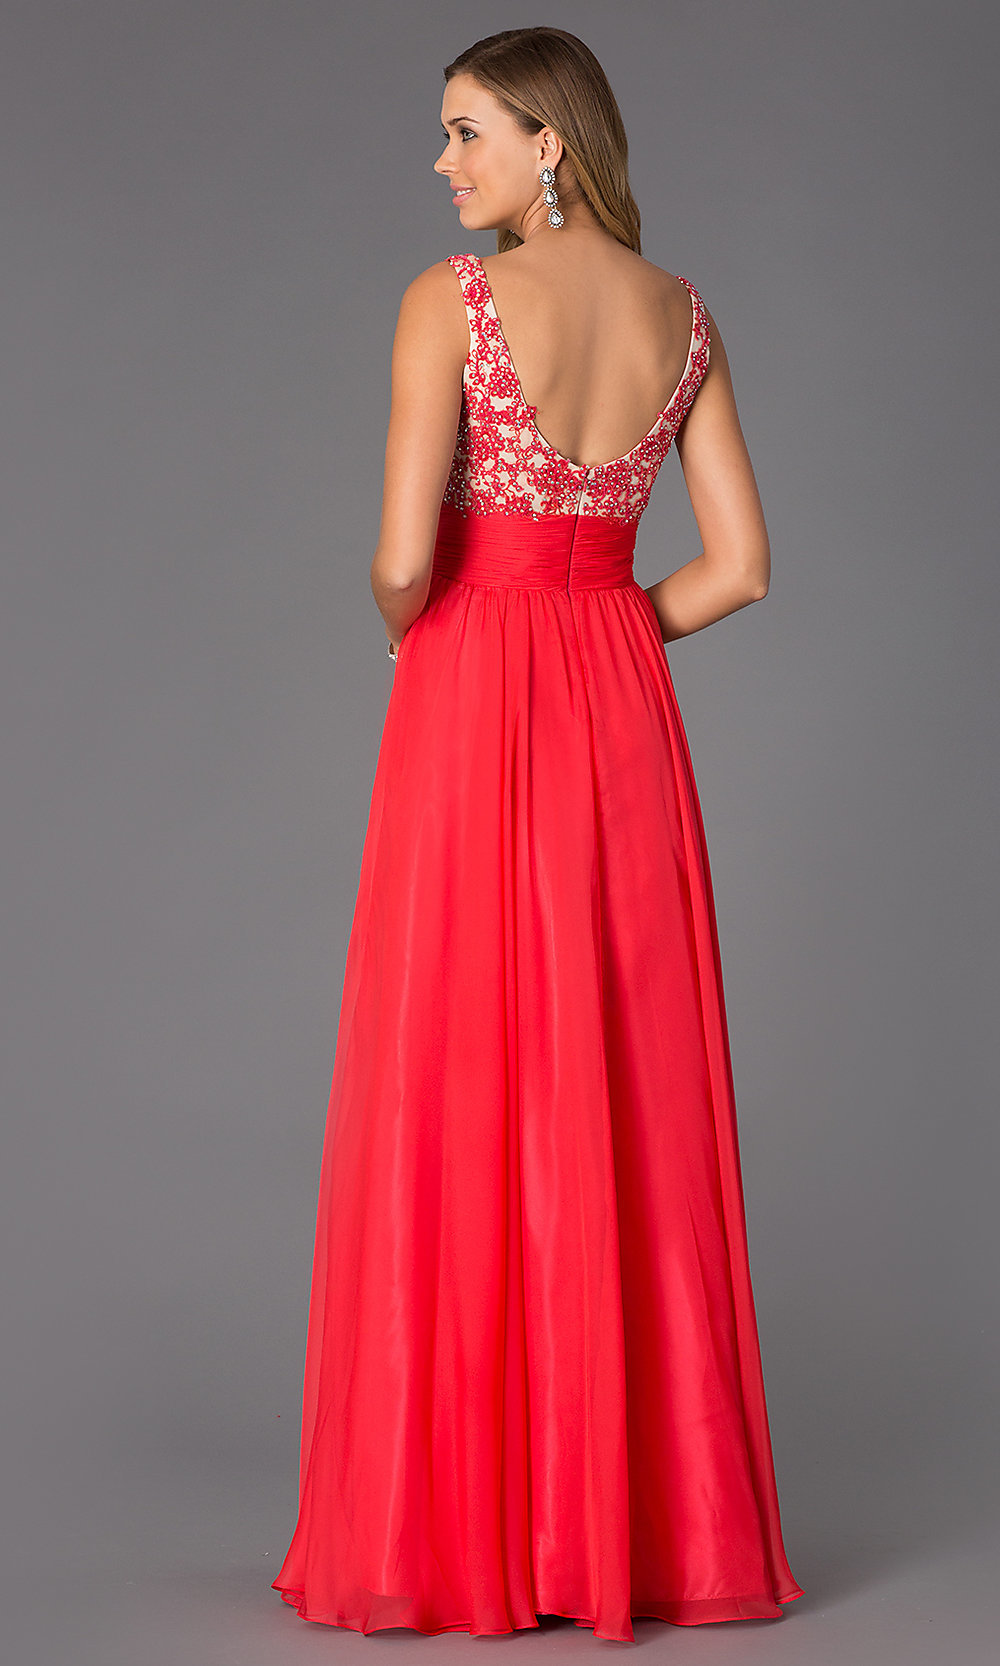 Long Scoop Neck Formal Dress,Alyce Sleeveless Gown 35689